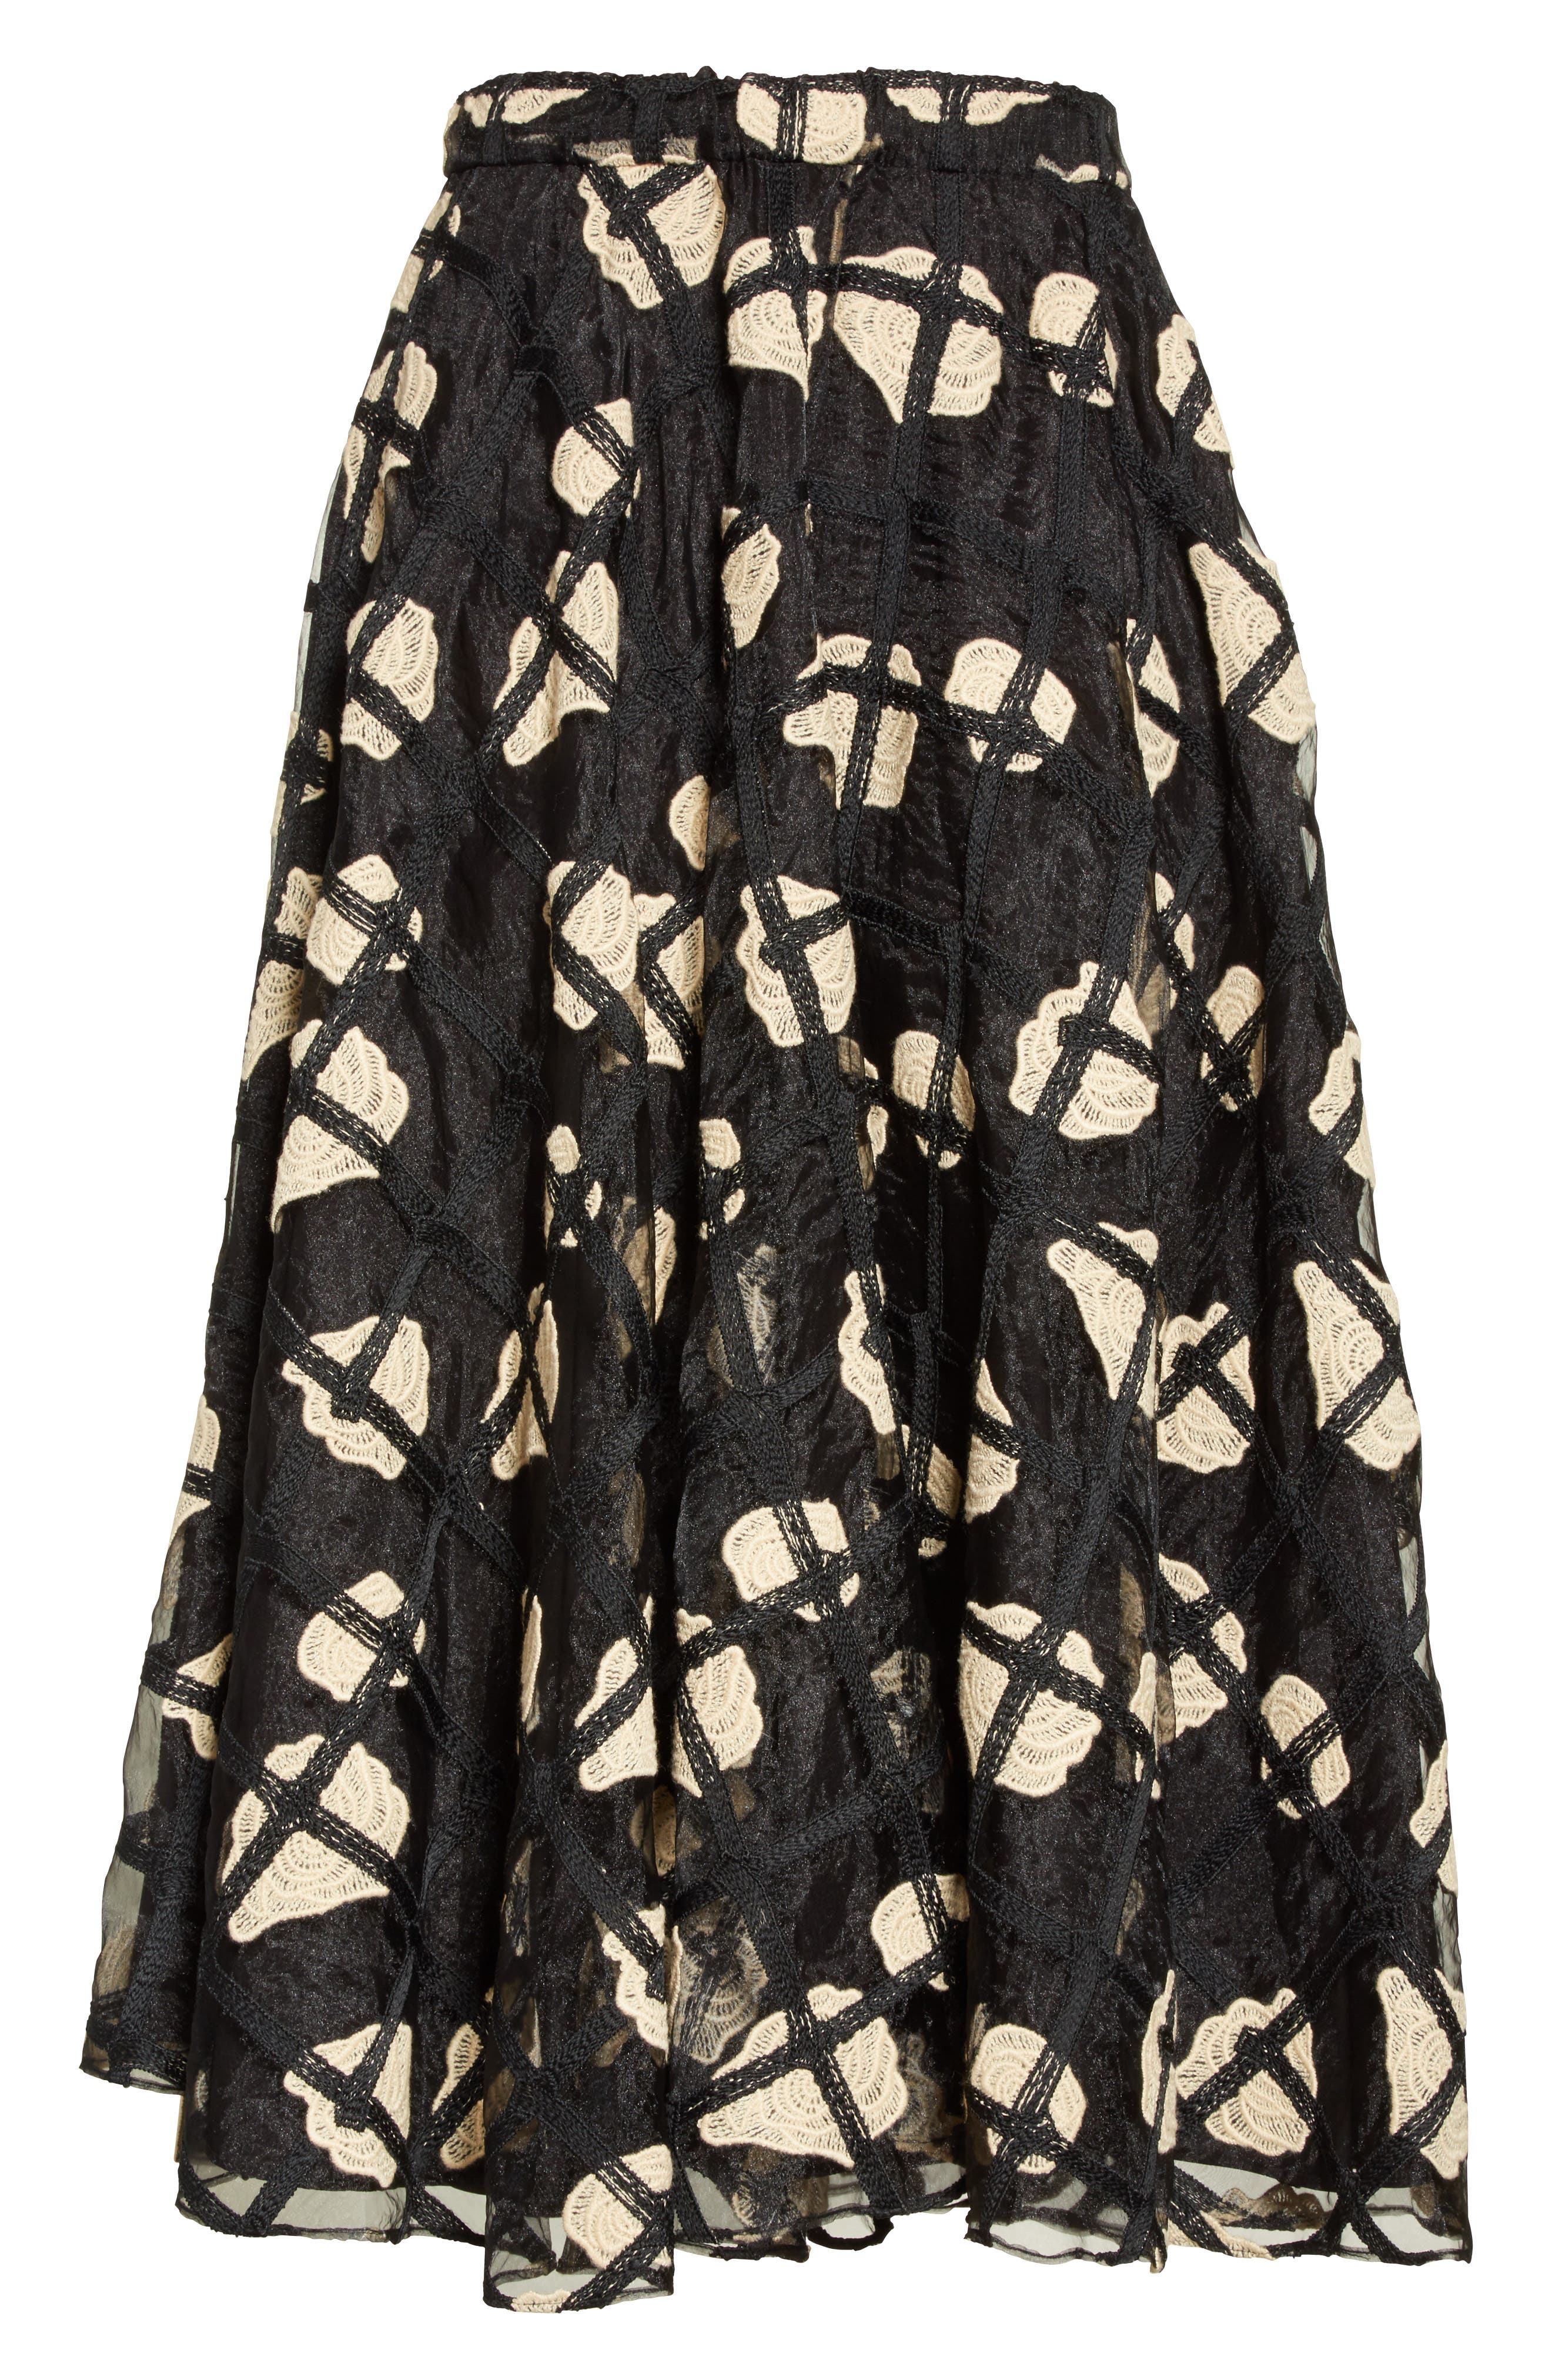 Floral Cage Lace Midi Skirt,                             Alternate thumbnail 5, color,                             Black